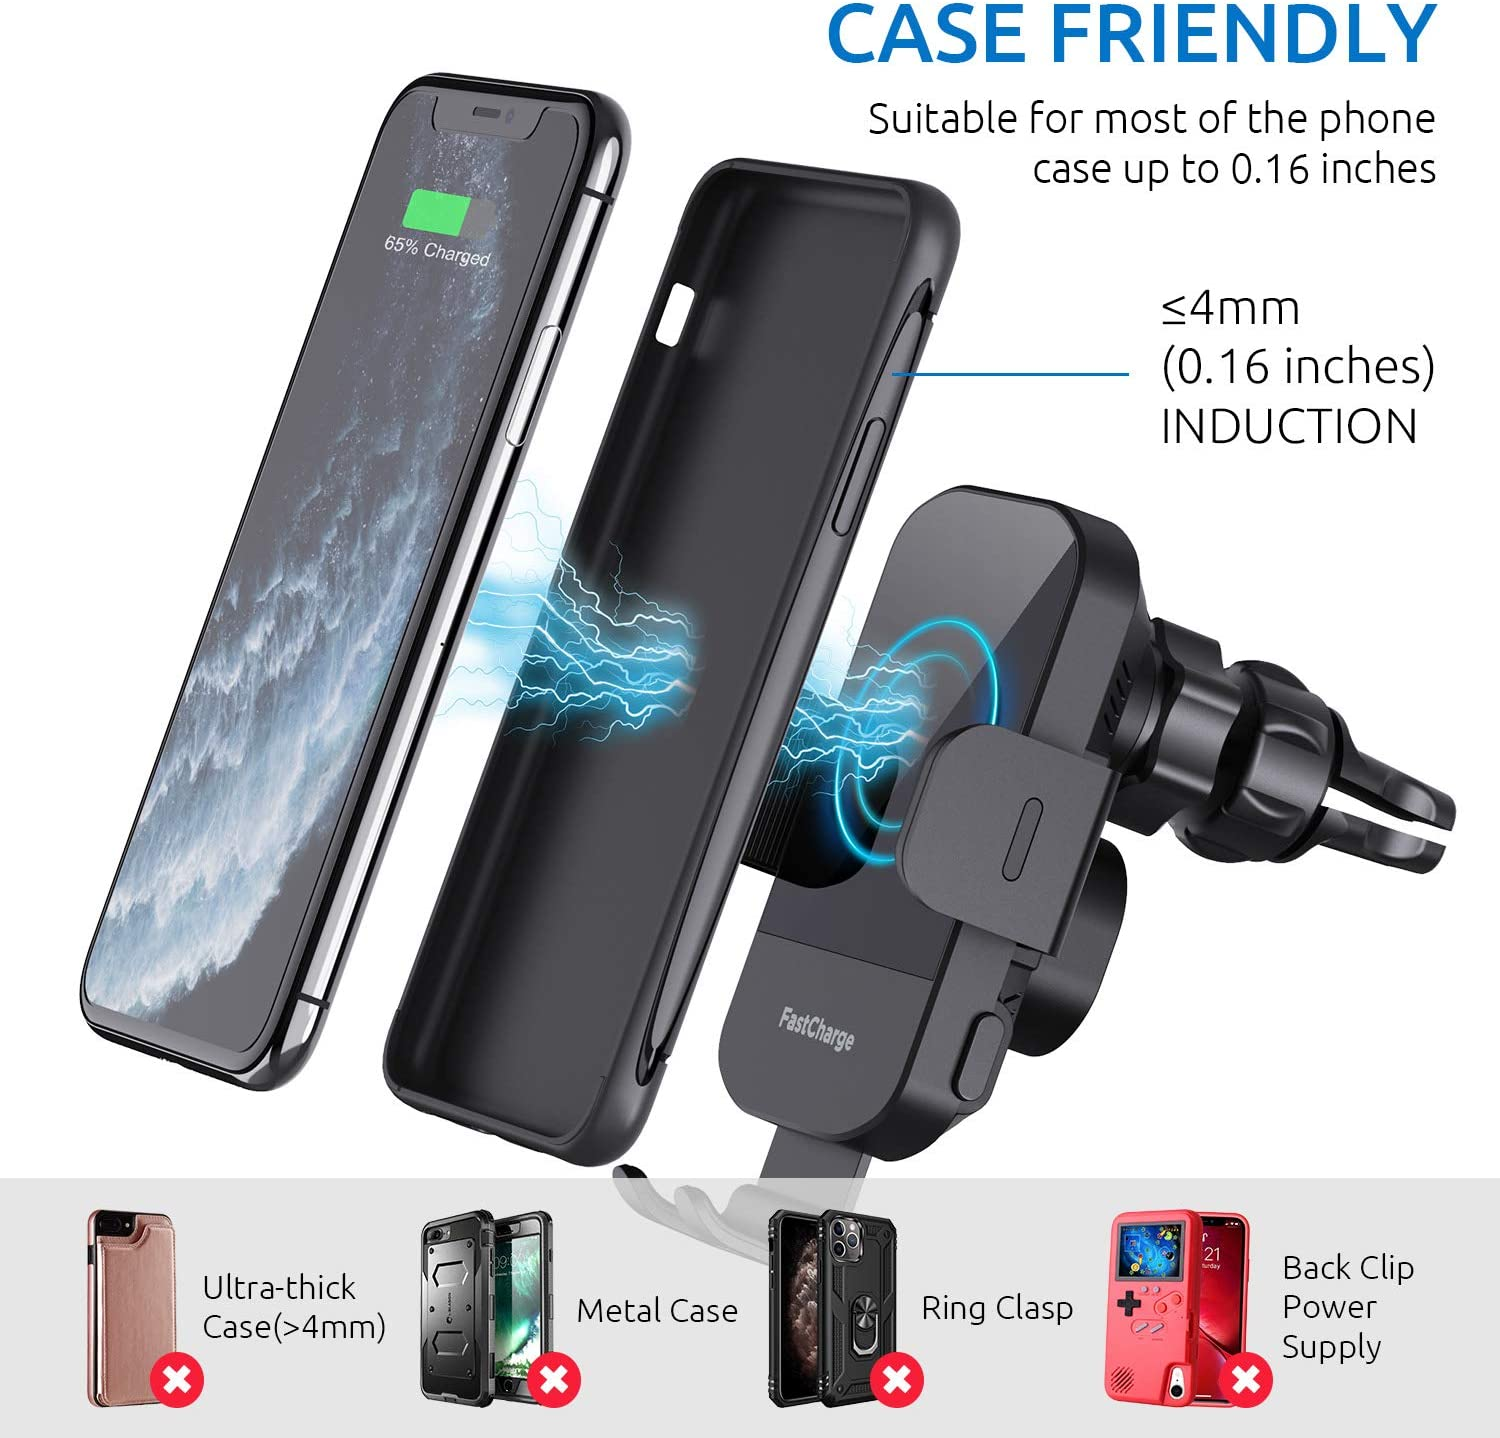 CHGeek Smartphone holder case friendly for ford escape